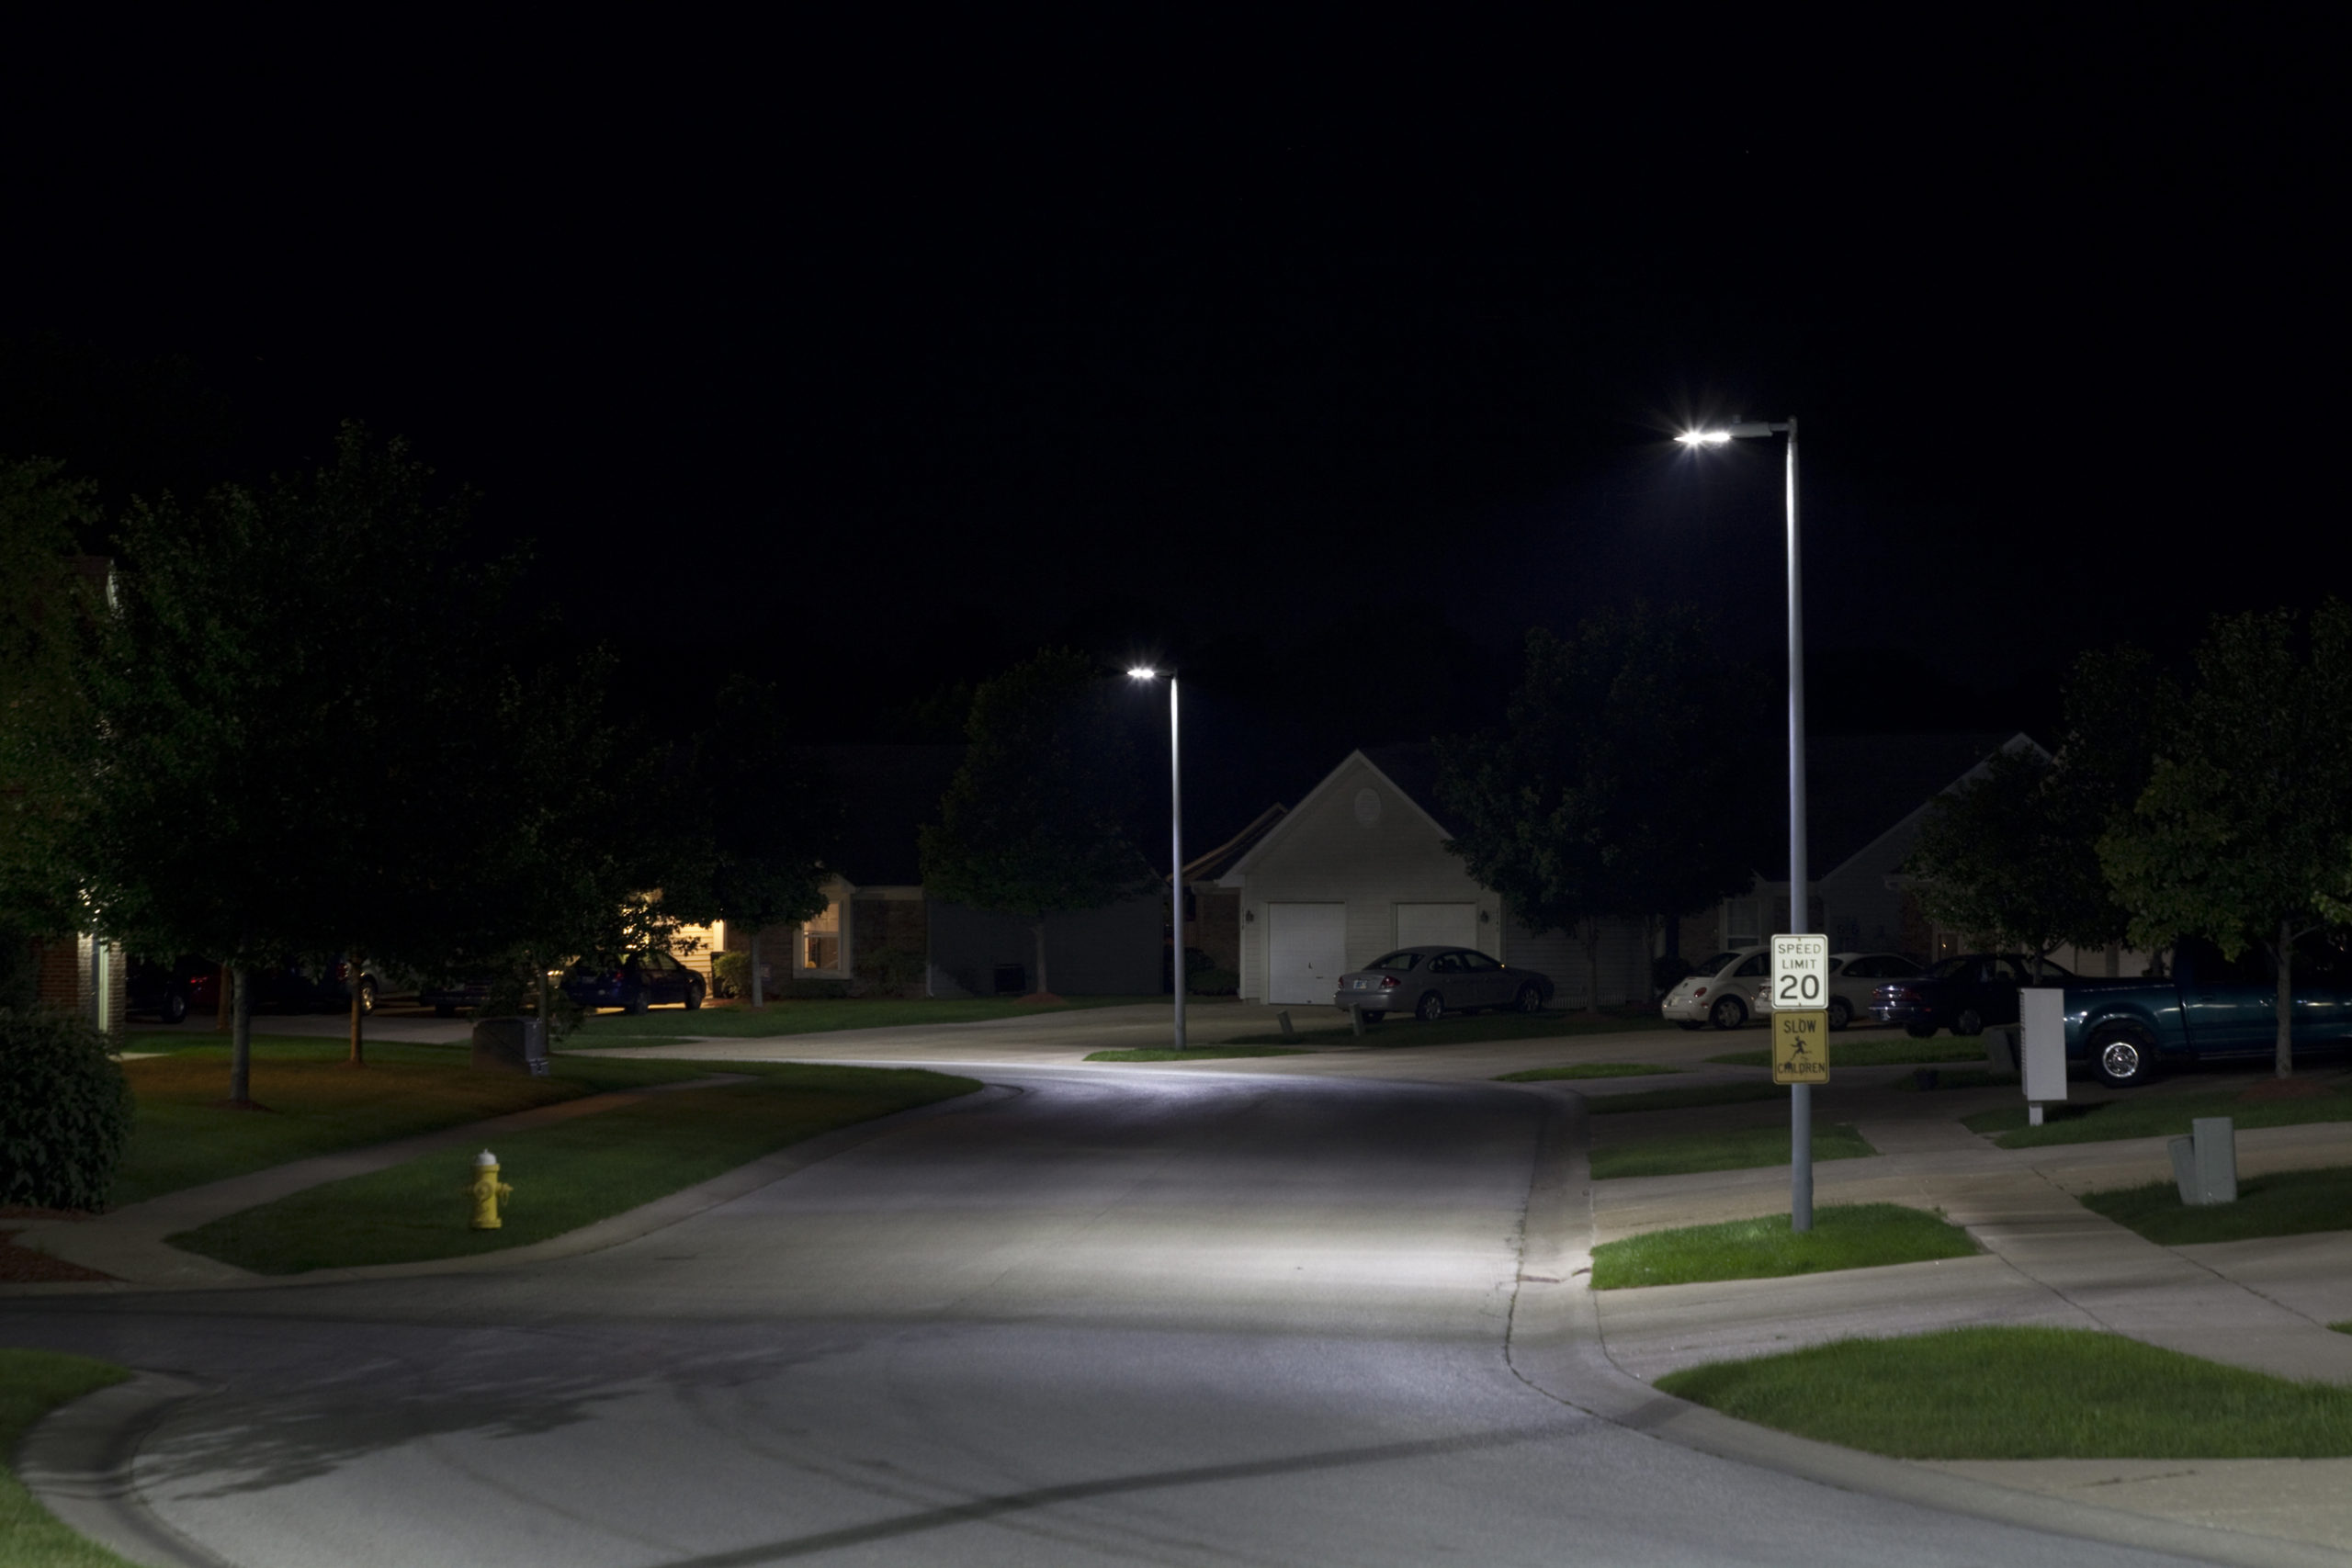 File Photo of Streetlights on Street at Night, adapted from image at energy.gov